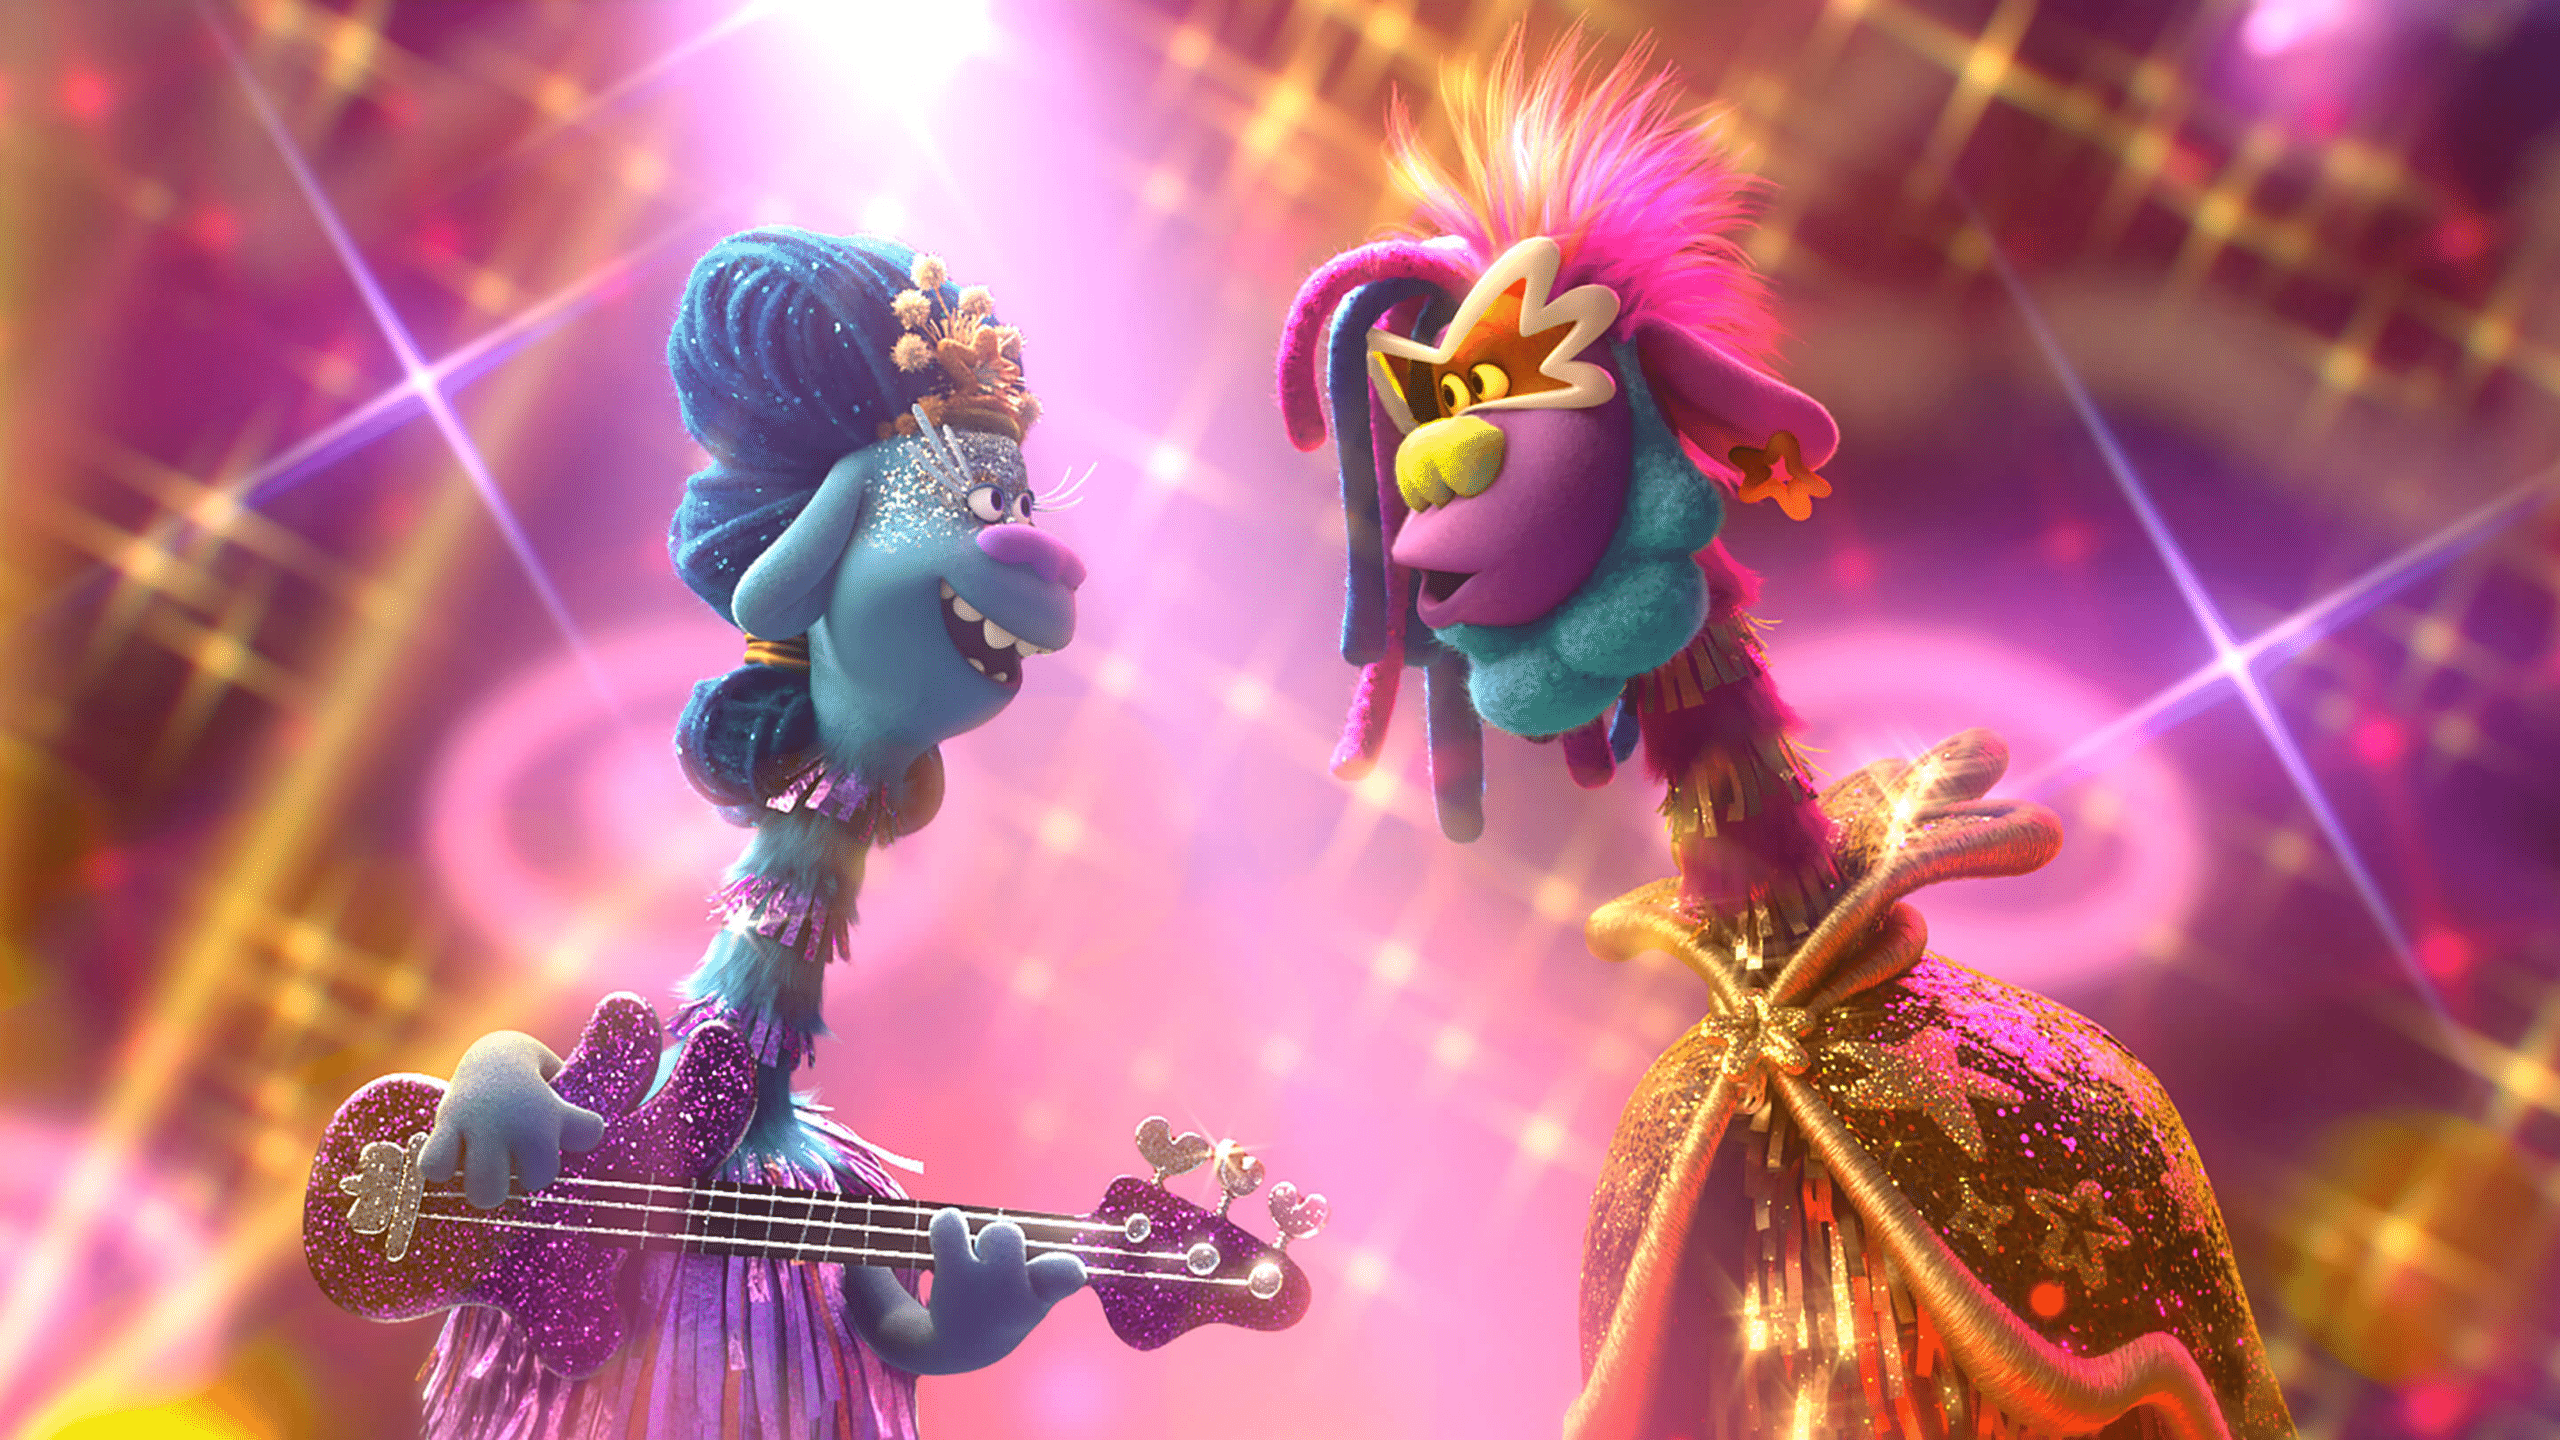 Queen Essence (Mary J. Blige) and King Quincy (George Clinton). Queen Poppy, Branch, and the rest of your favorite Trolls are back for another musical adventure that's bigger and louder than ever before! In TROLLS WORLD TOUR, Poppy and Branch discover that their kingdom is only one of six musical realms Funk, Country, Techno, Classical, Pop, and Rock that was once united in perfect harmony.